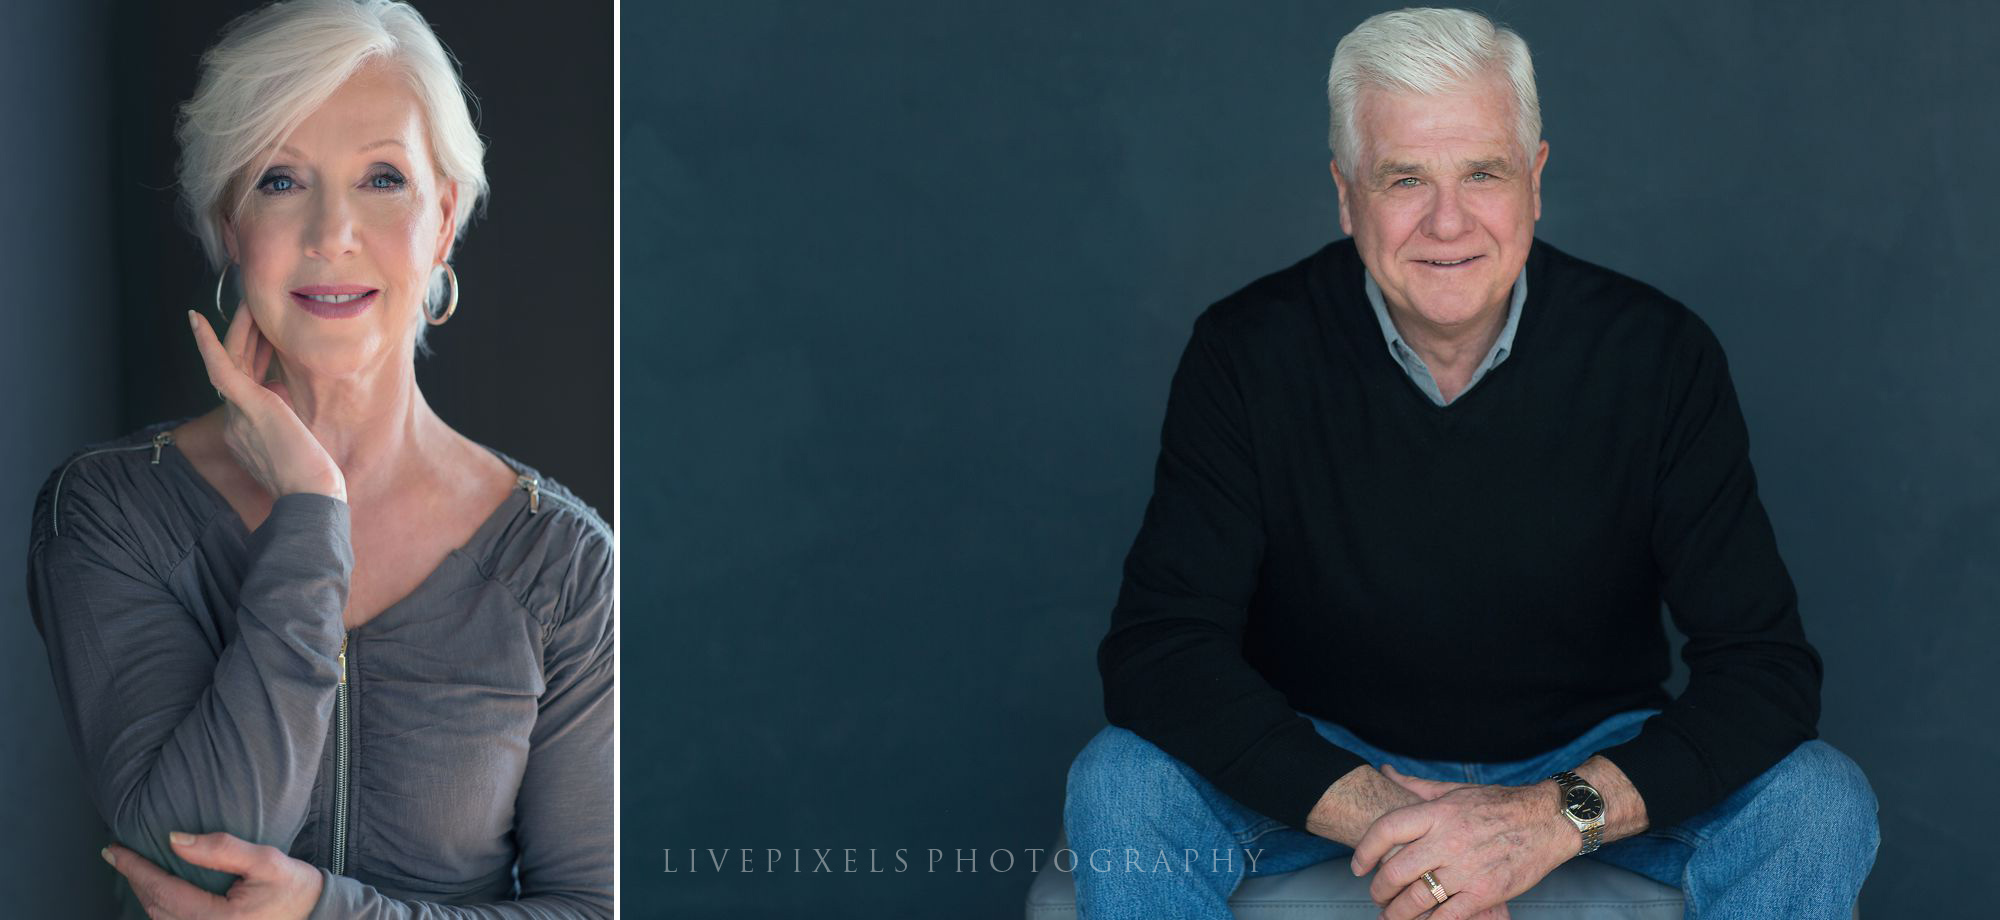 Makeover Portraits for Men and Women - Livepixels Photography, Toronto / livepixelsphotography.com